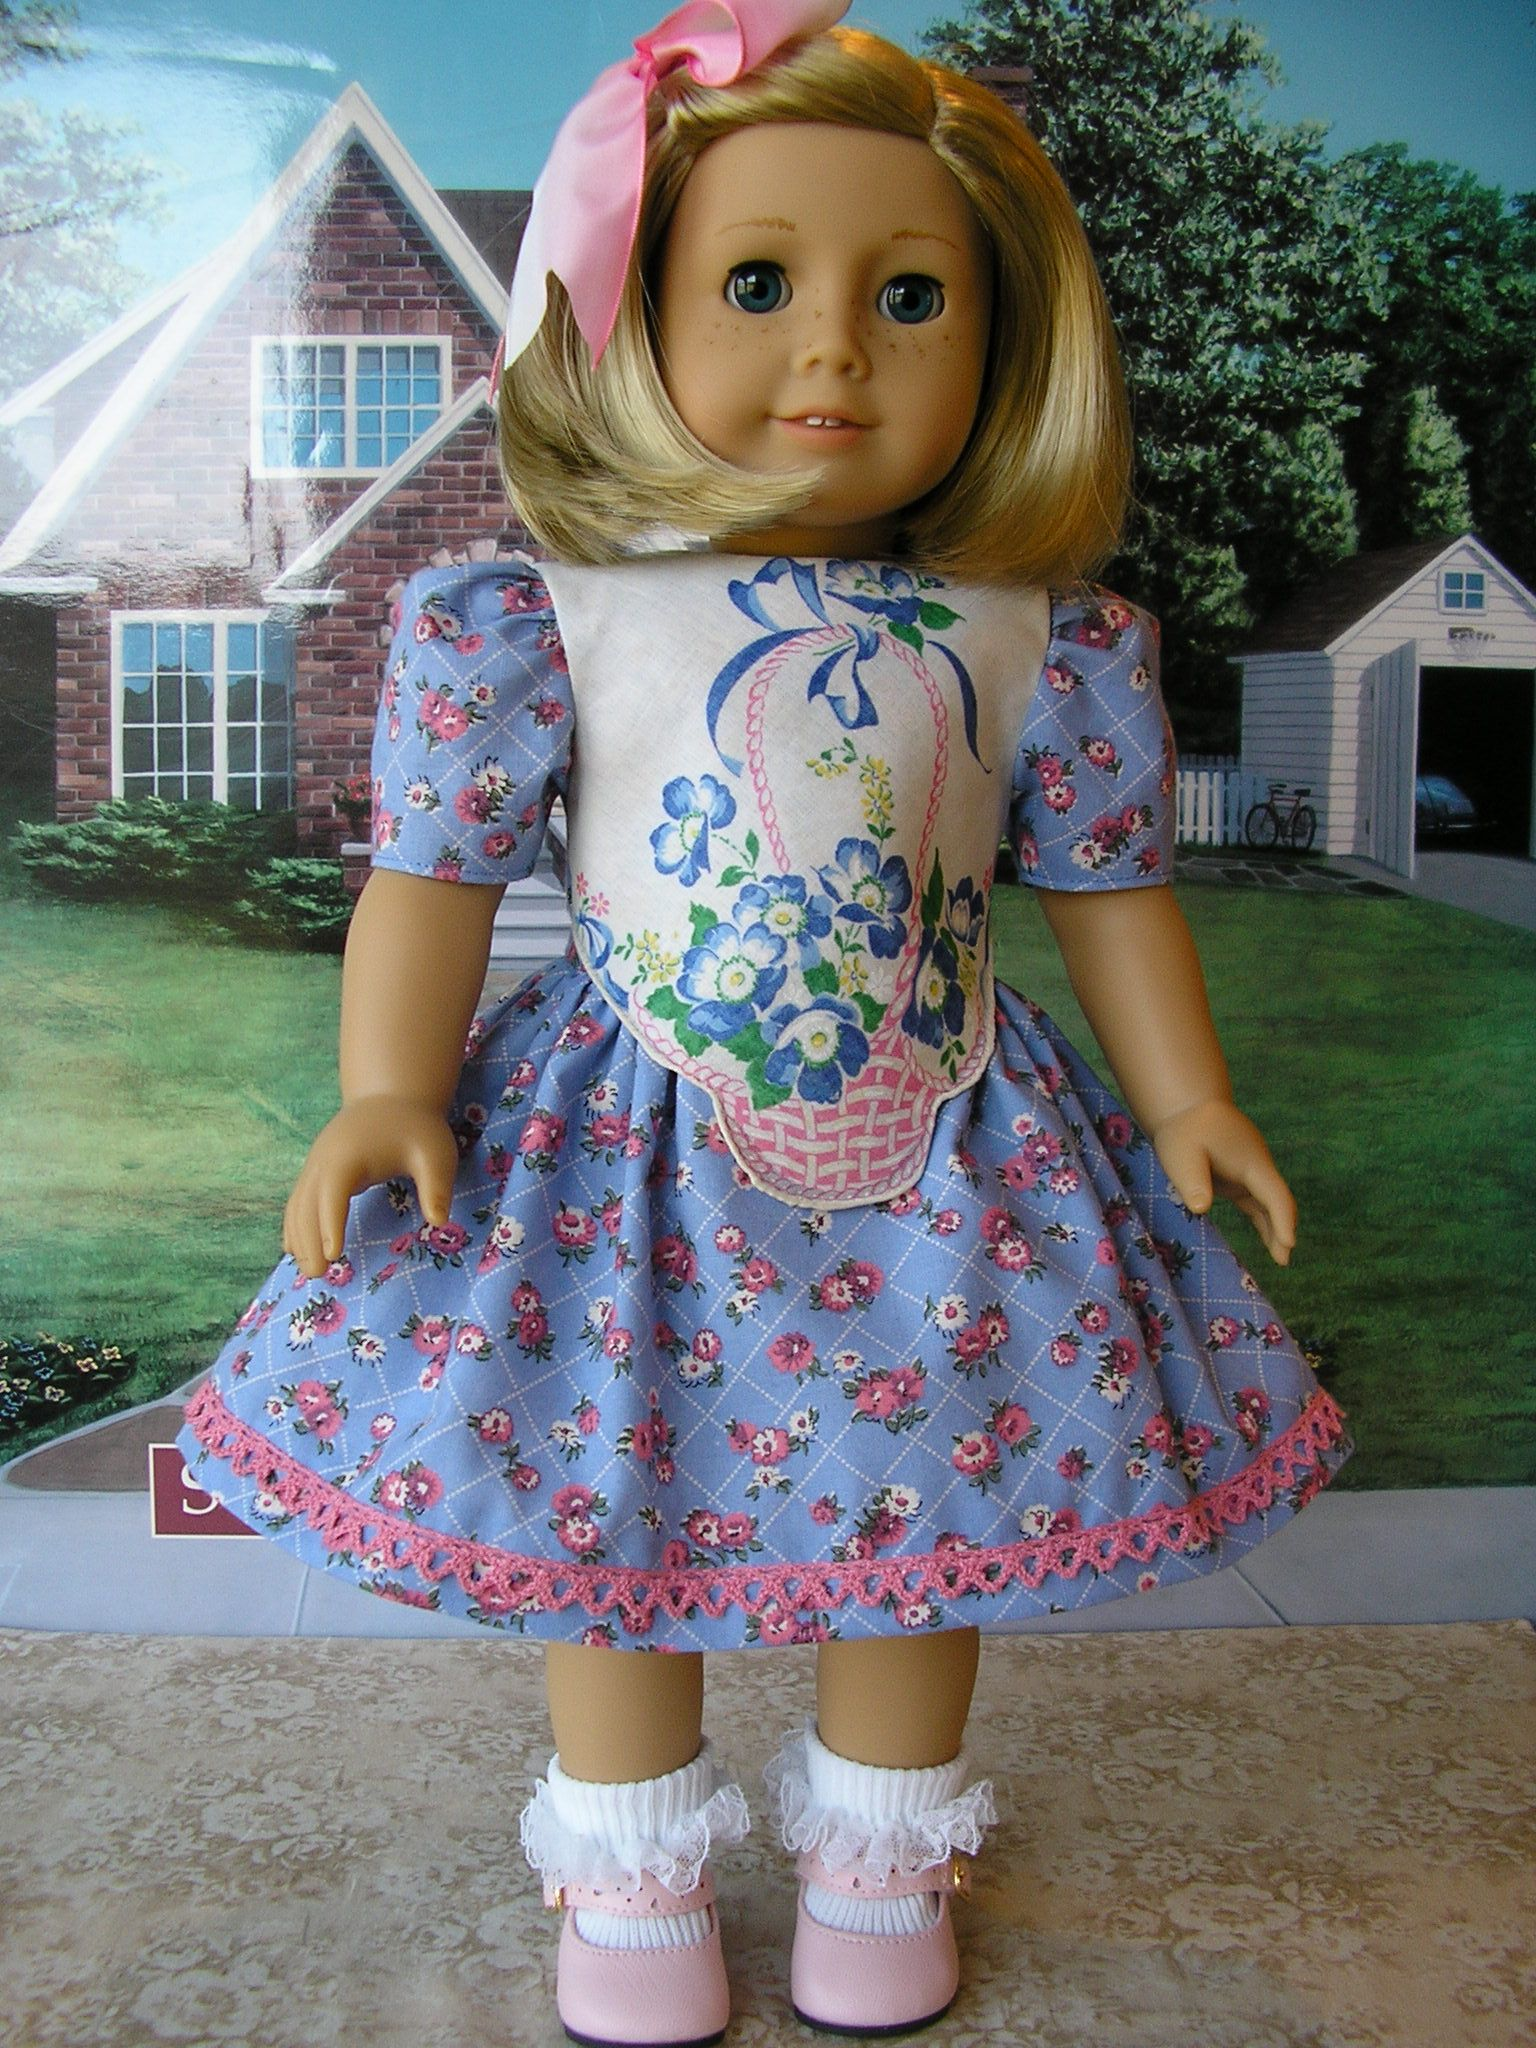 https://flic.kr/p/bDDVgv | basket 1 | I'm back to sewing for American Girl dolls for my etsy shop!  The bodice on this dress is made from a vintage hankie.  There was a basket printed on each corner of the hankie, so I actually made four identical dresses!